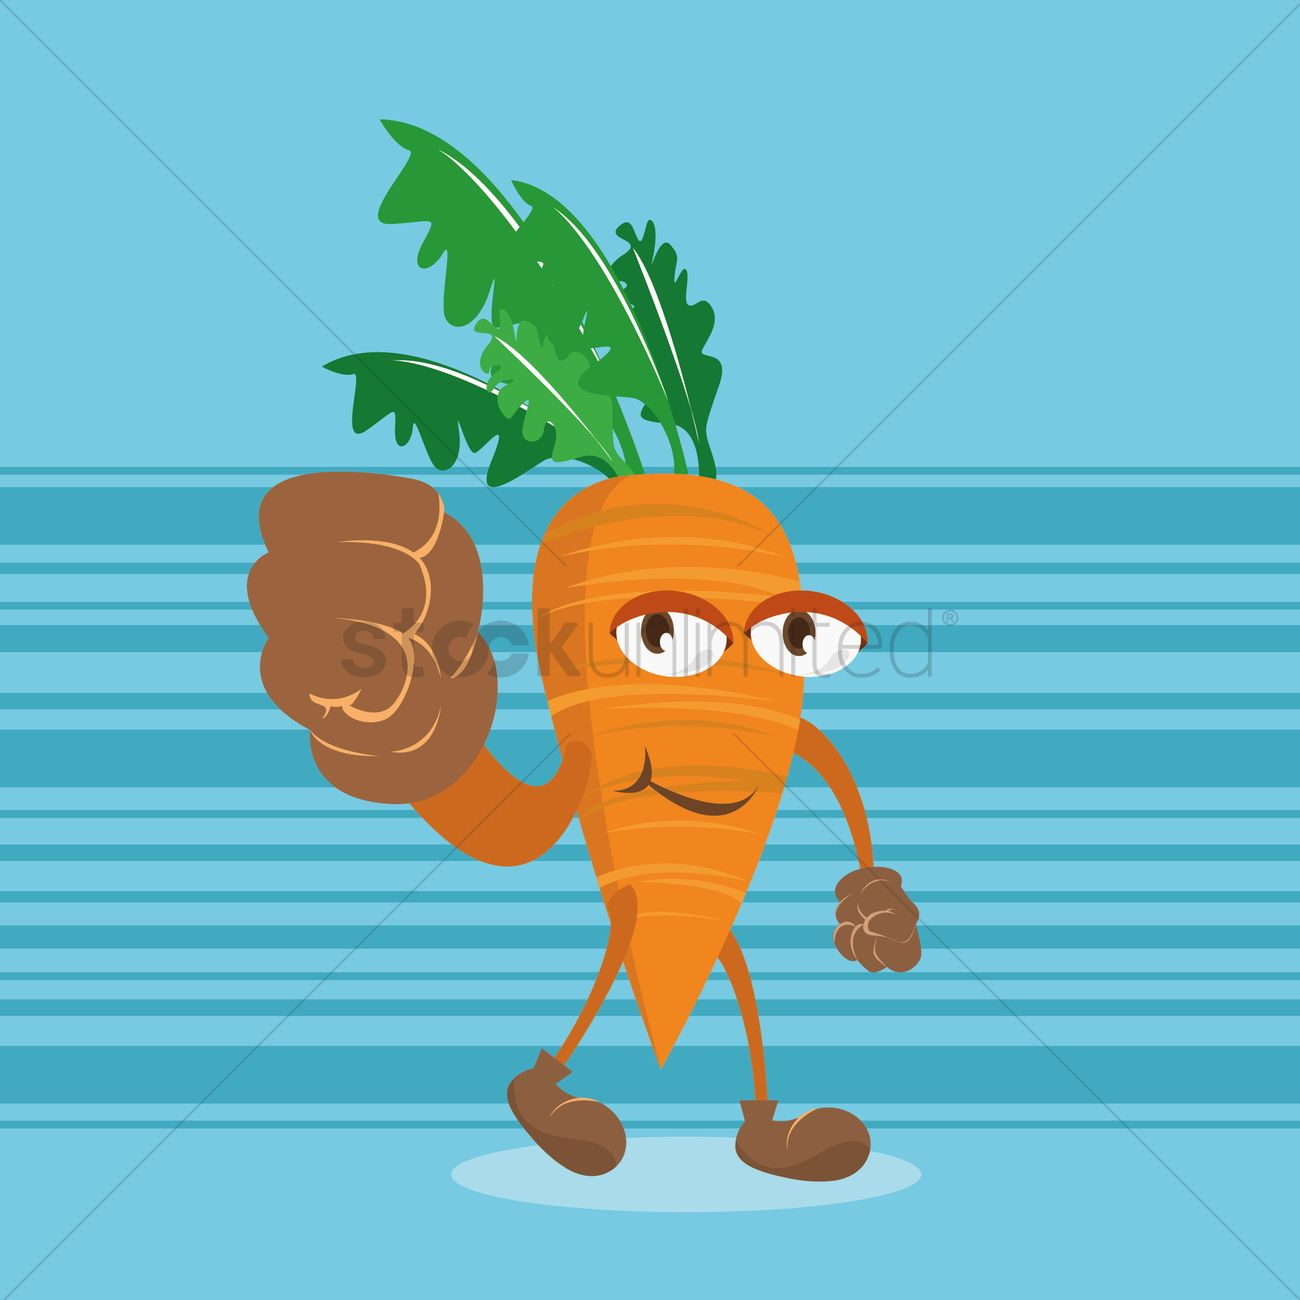 Smiling Carrot Cartoon With Clenched Fist Vector Image 1427413